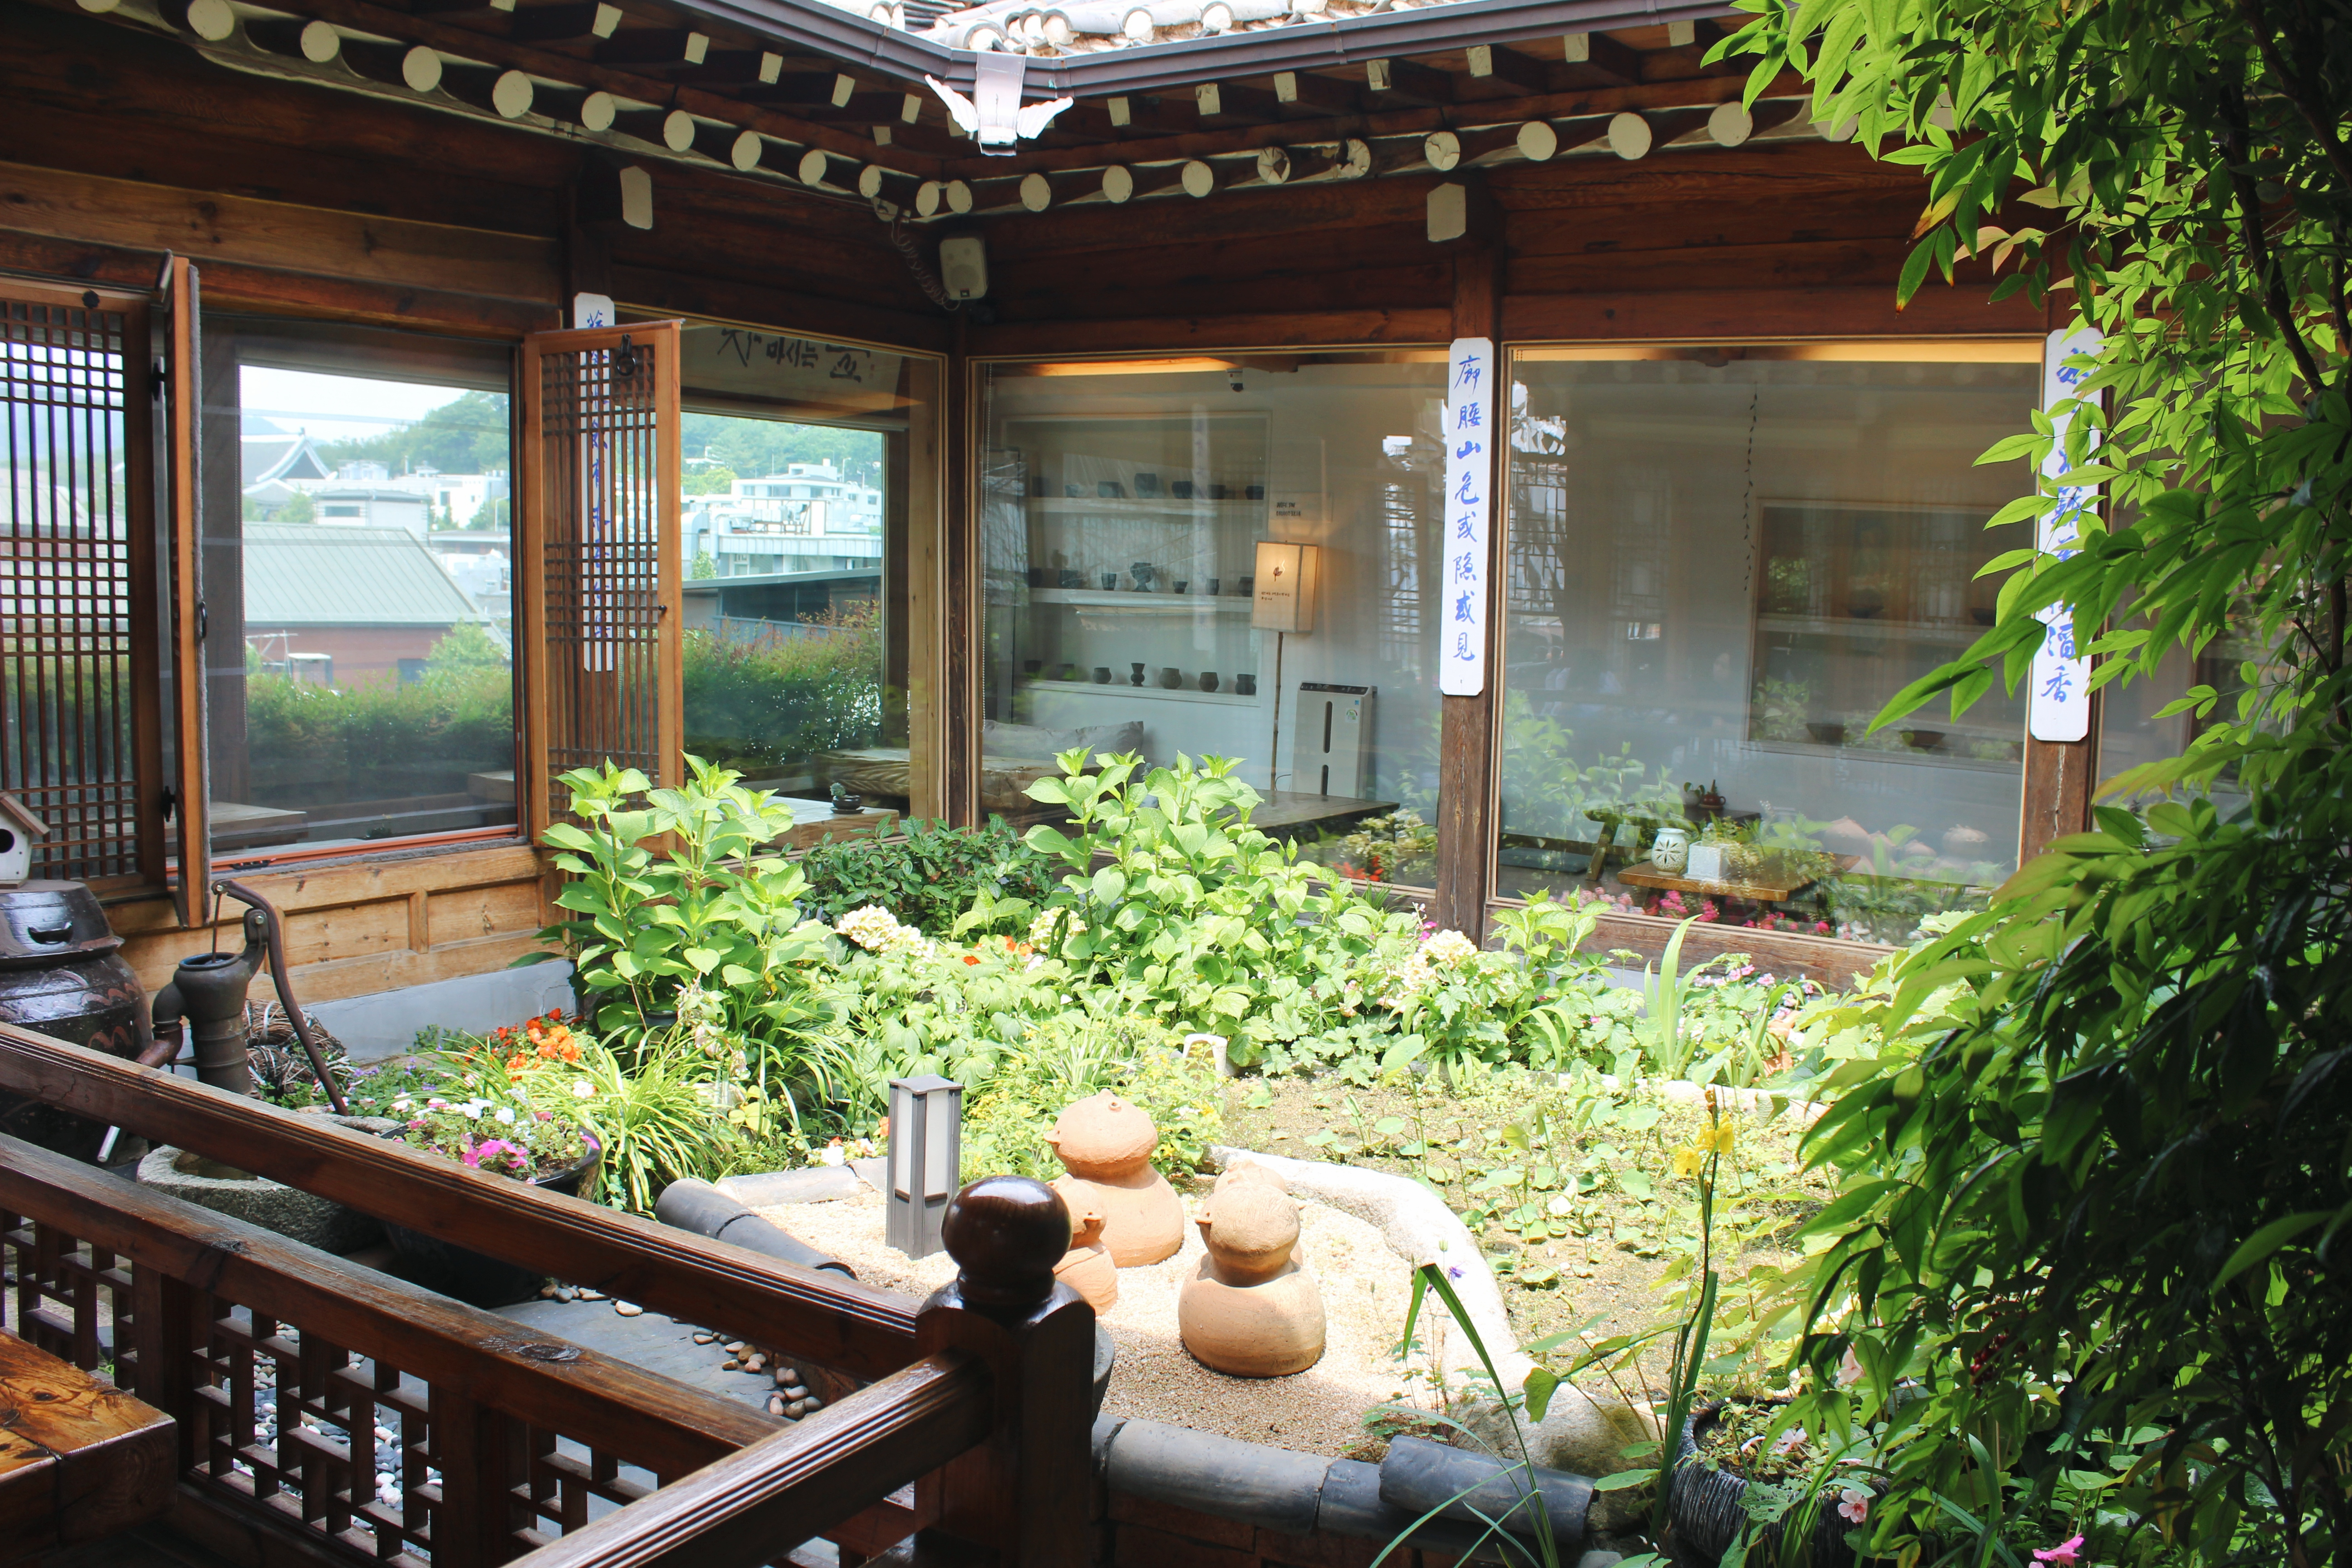 A garden can be found in the center of Cha-teul